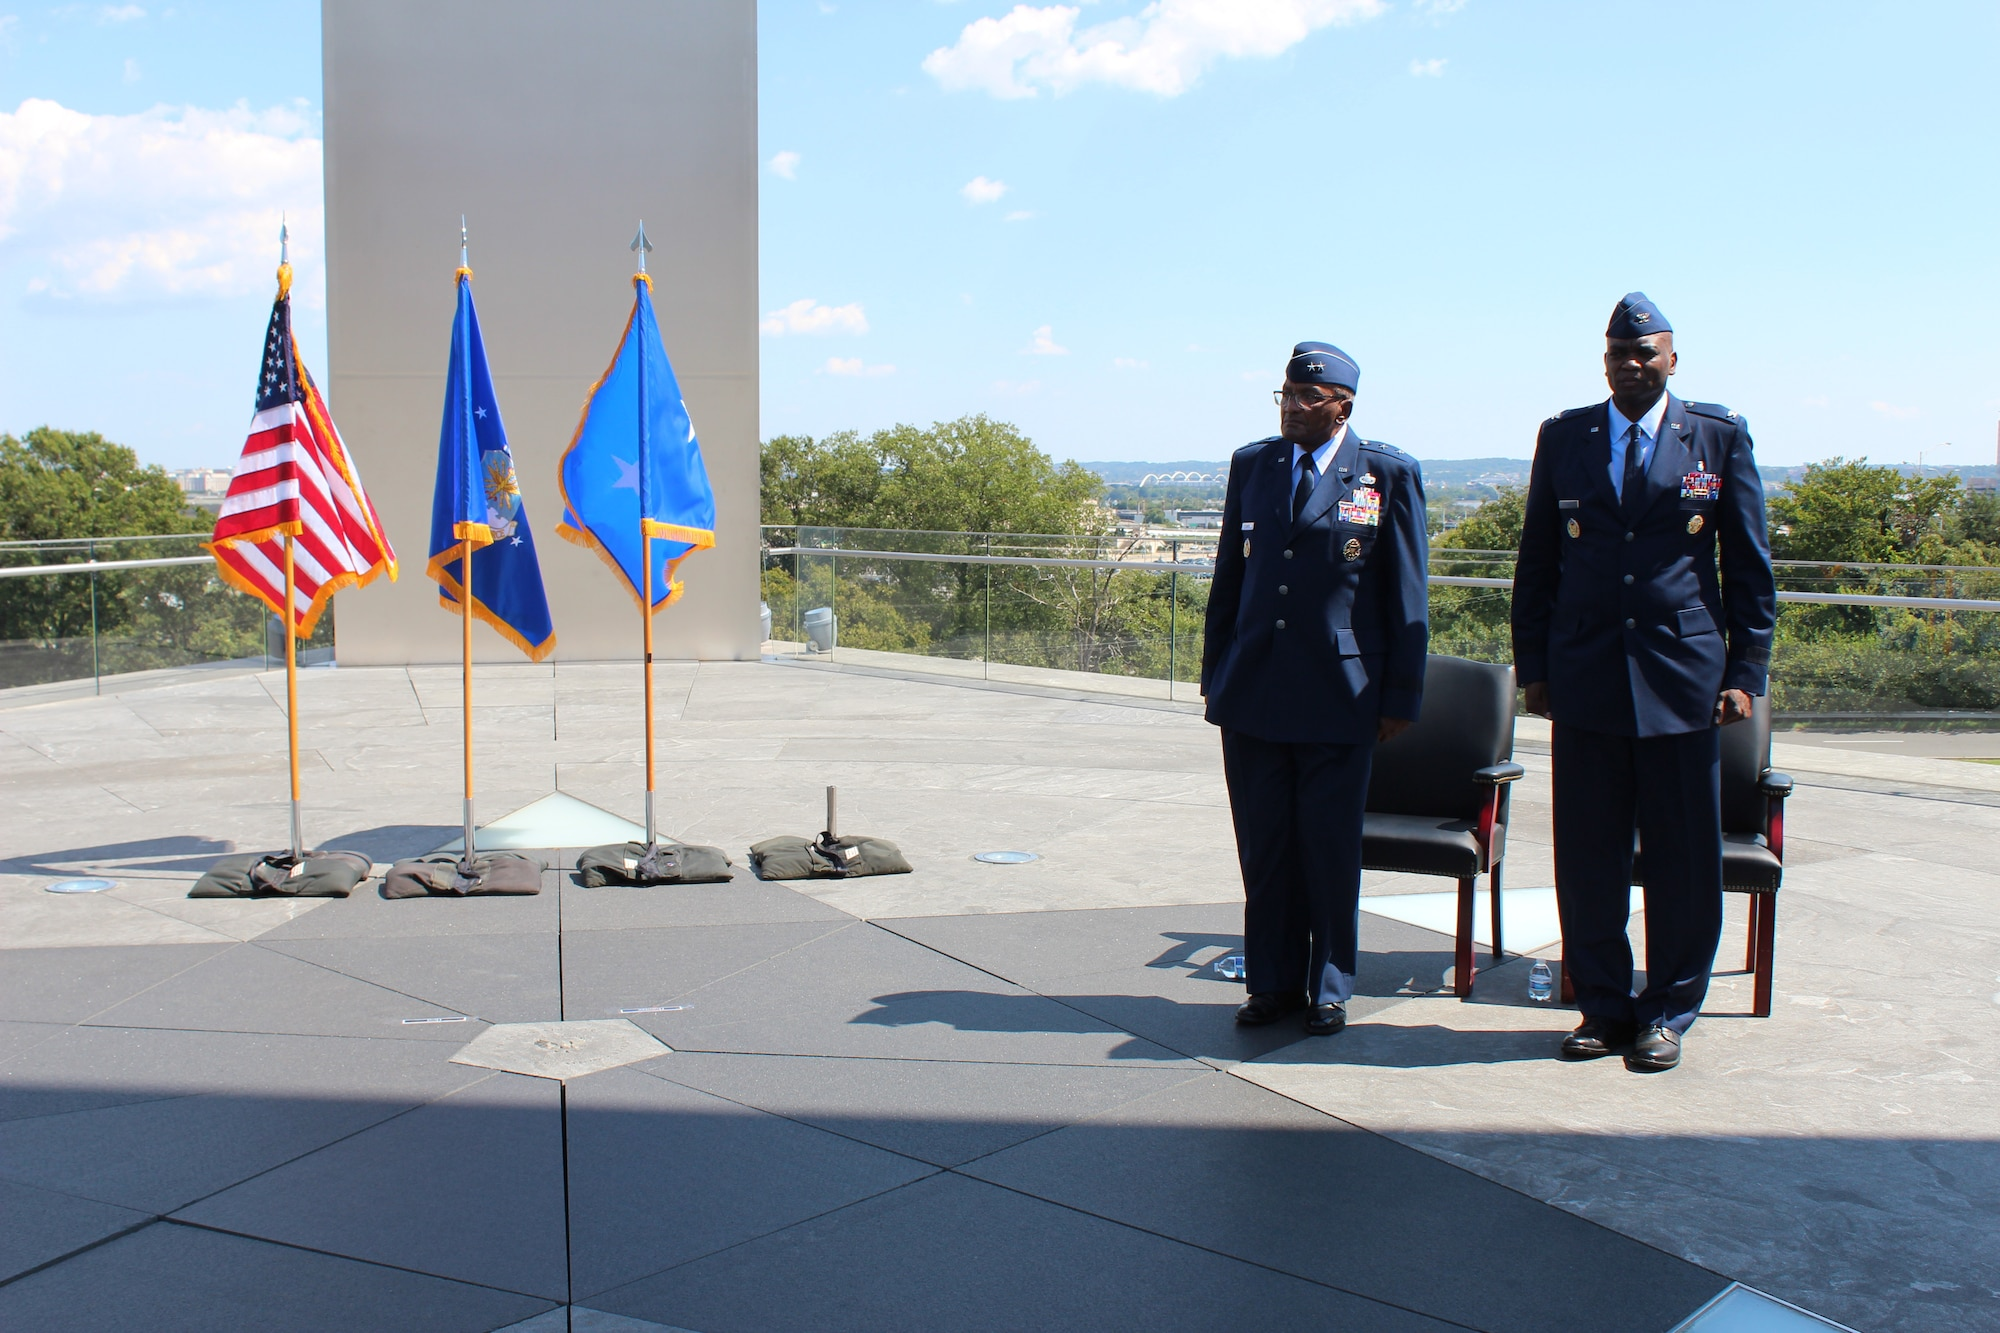 Retired Maj. Gen. Alfred K. Flowers, Sr. (left), the longest-serving Airman, stands next to his son, Brig. Gen. Alfred K. Flowers, Jr., Air Force Medical Service Manpower, Personnel and Resources director, during Flowers, Jr.'s promotion ceremony at the Air Force Memorial in Arlington, Va., Sept. 7, 2021.